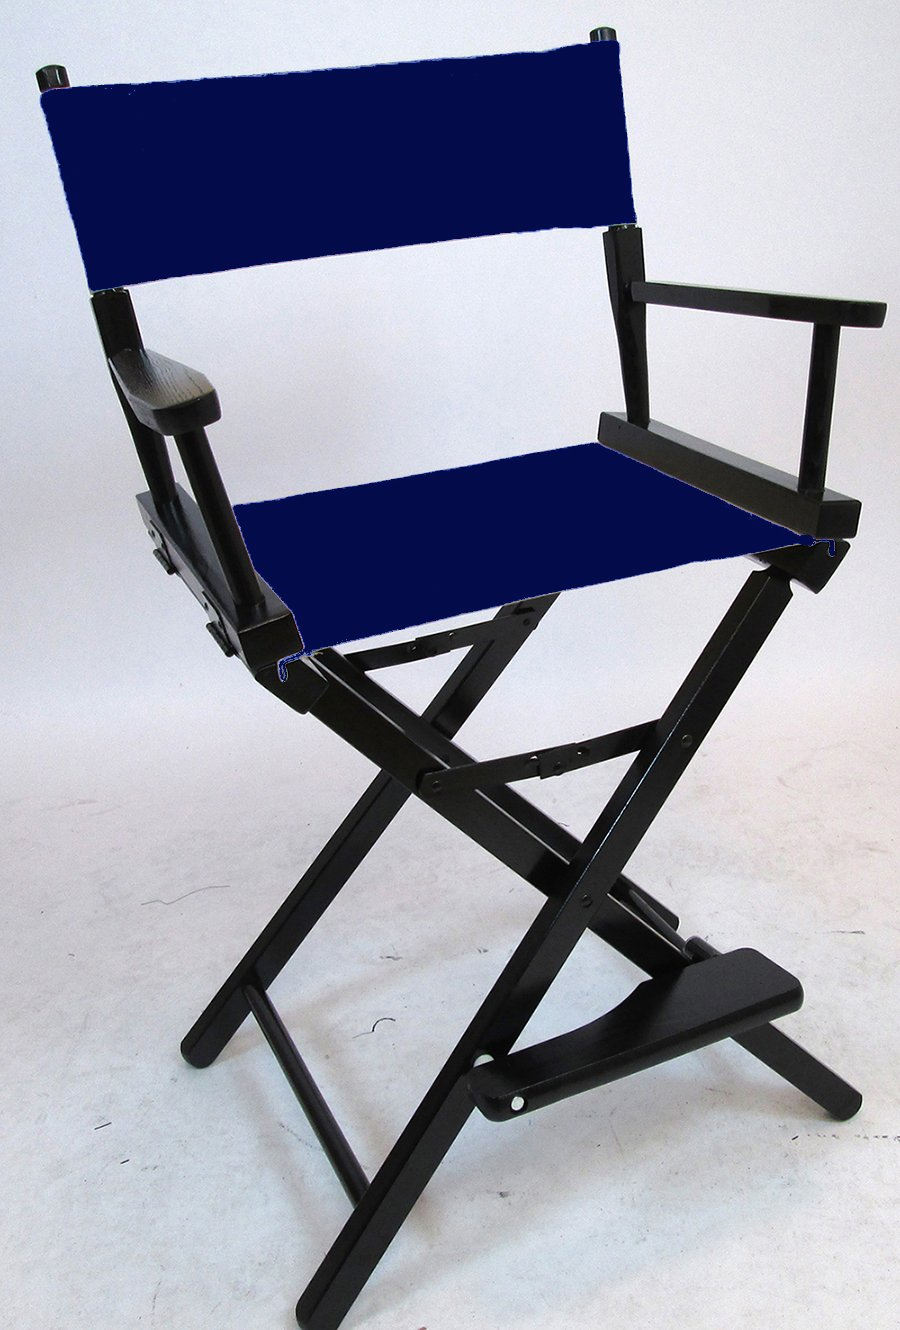 Gold Medal 24'' Counter Height Black Frame Directors Chair (Navy Blue) by Gold Medal